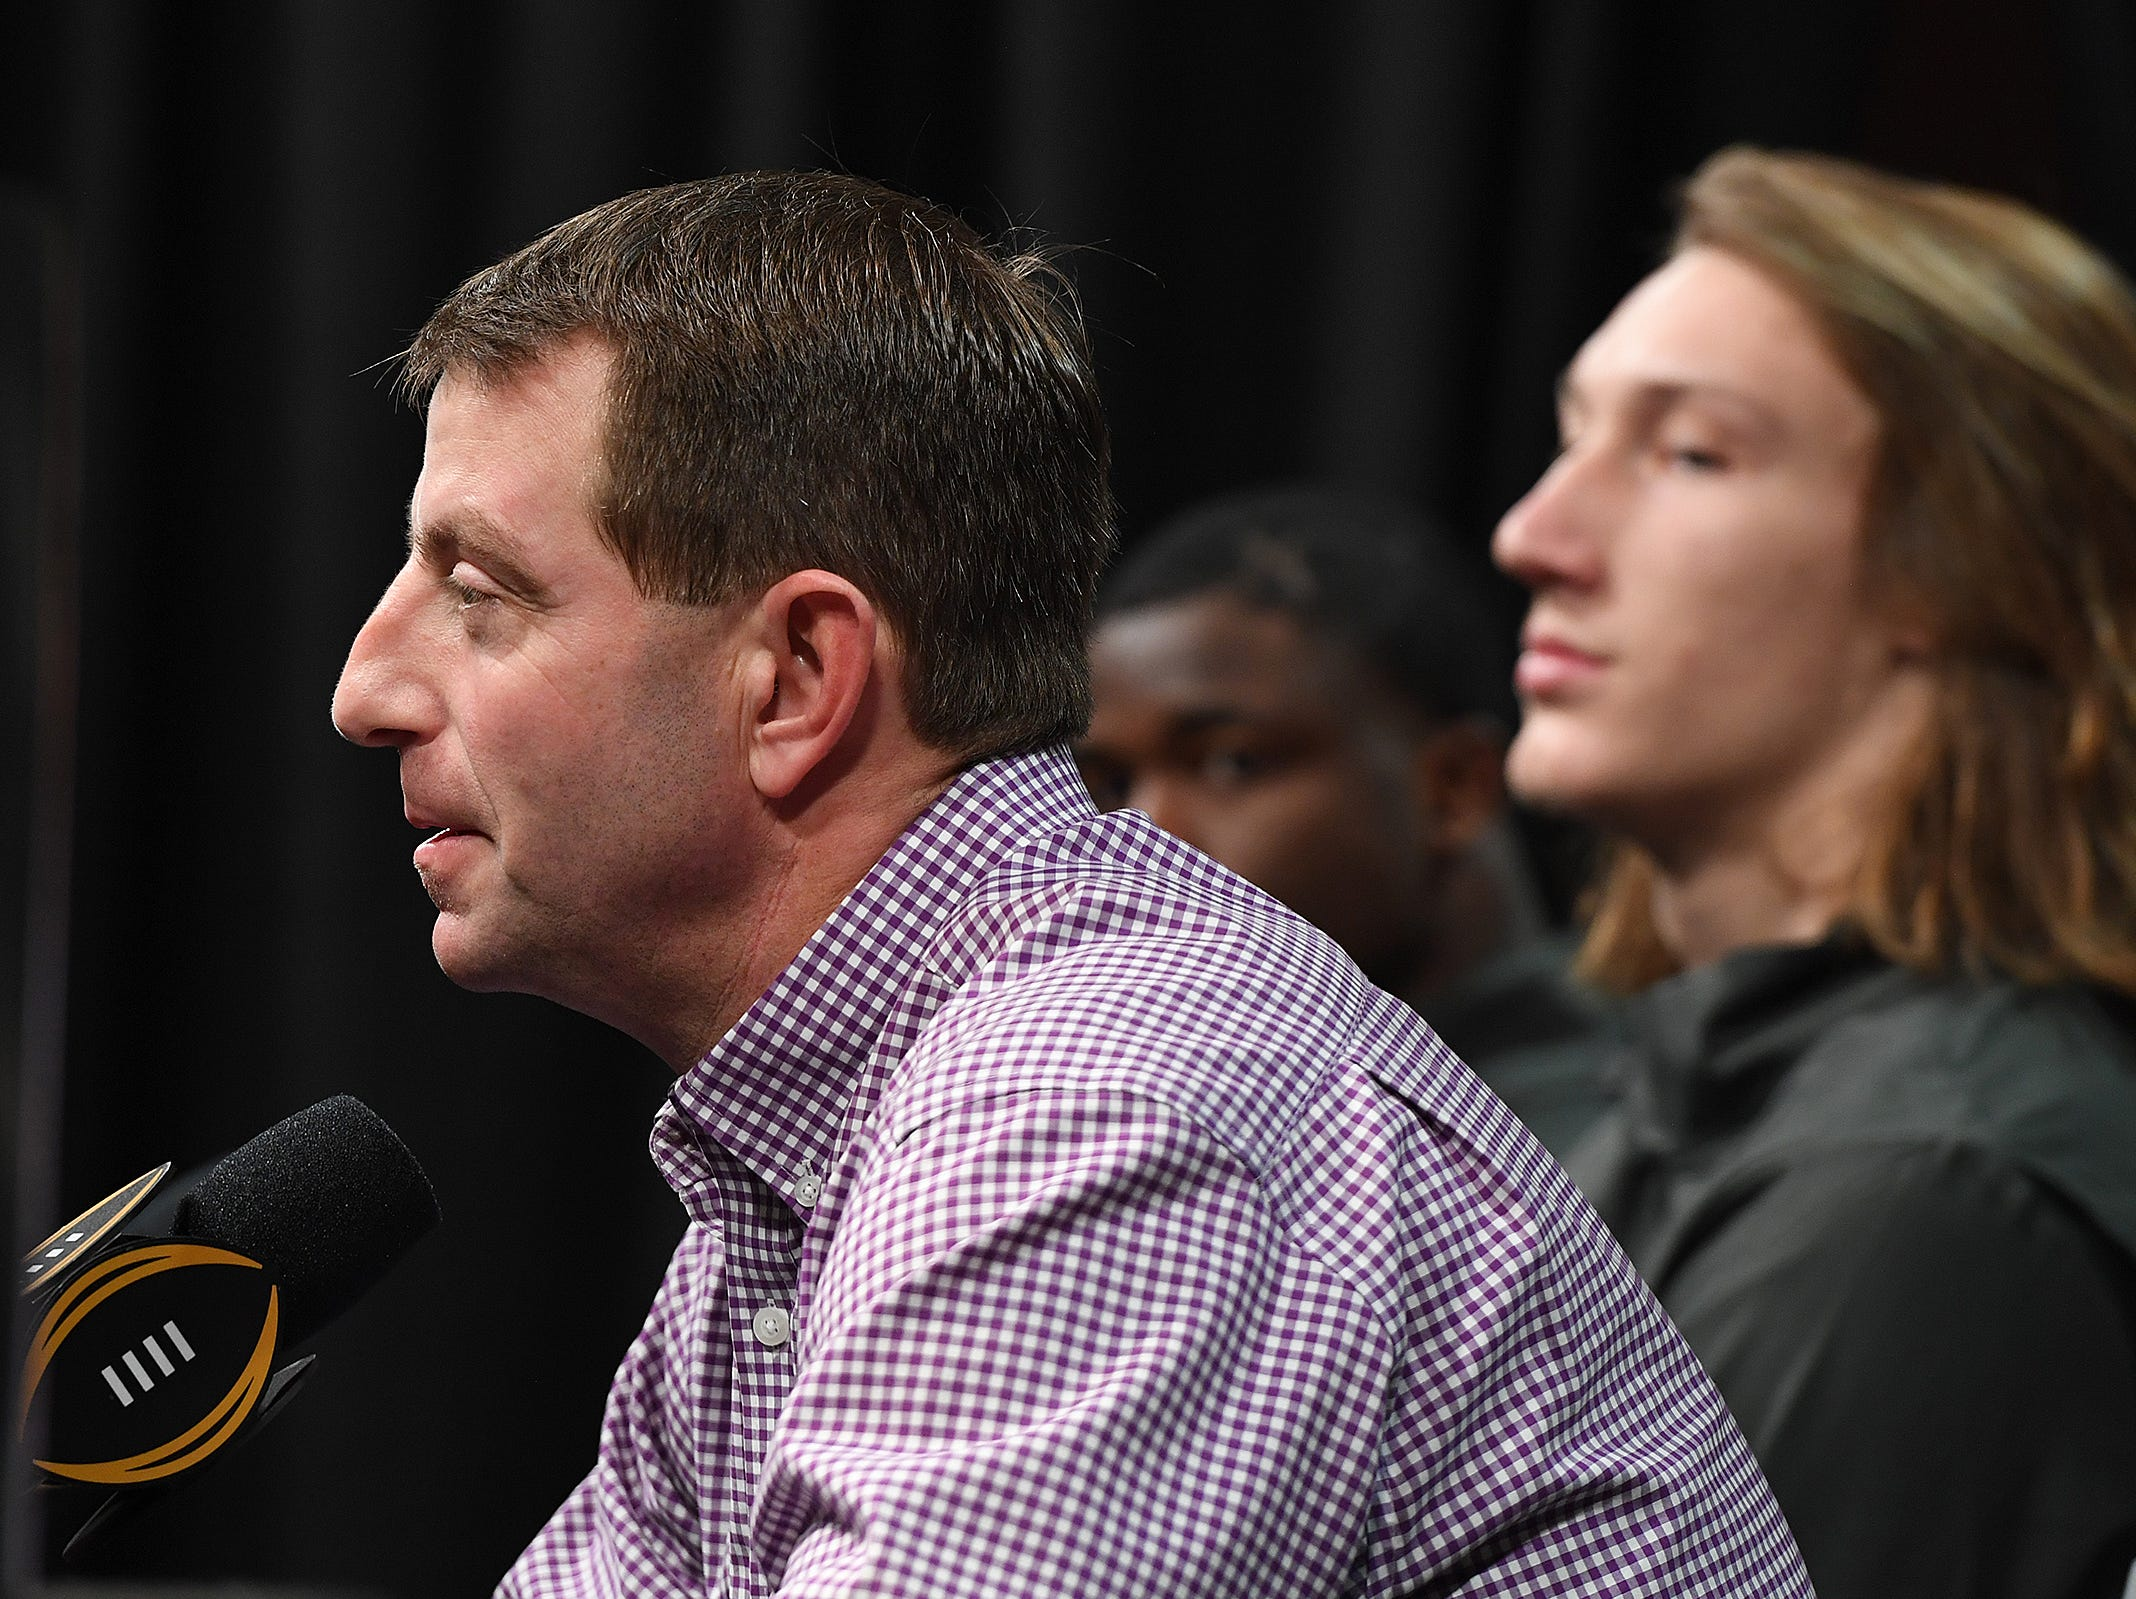 Clemson head coach Dabo Swinney answers questions during the College Football National Championship press conference in San Jose, CA Tuesday, January 8, 2019.